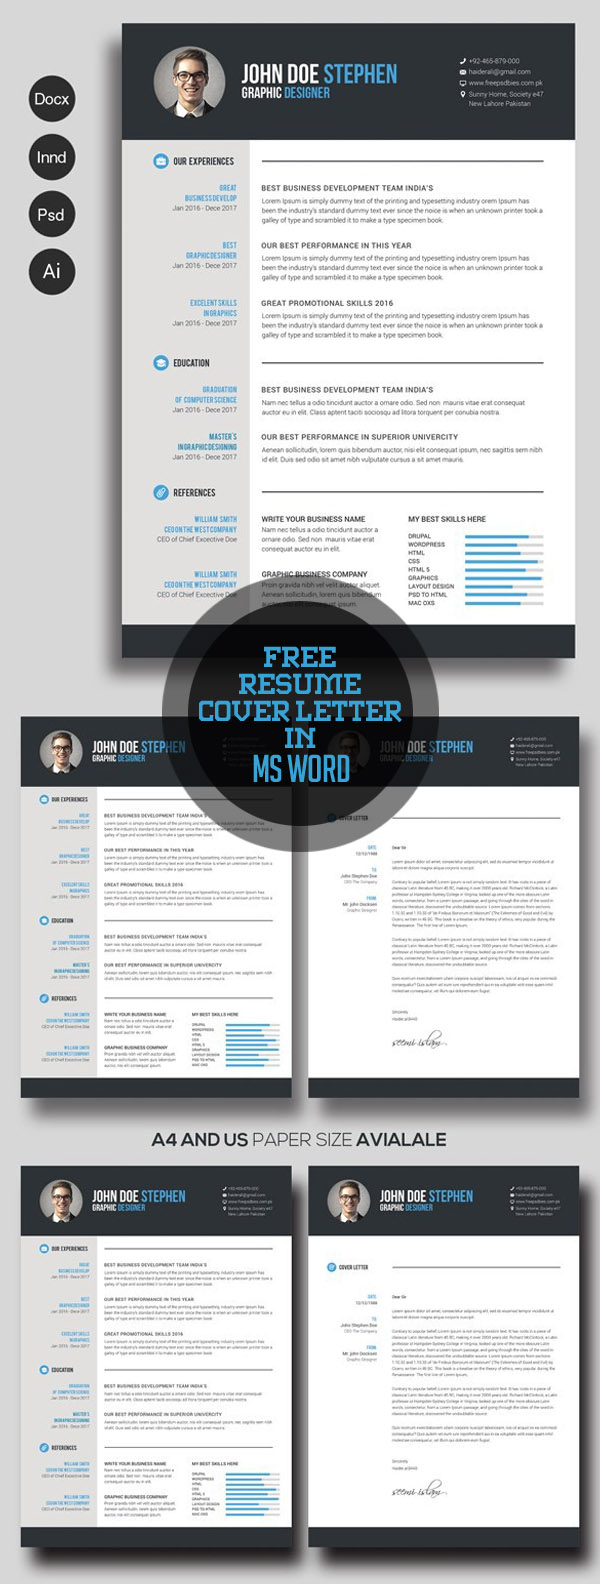 free cv resume templates freebies graphic design junctiongraphic junction ceo template Resume Ceo Resume Template Word Free